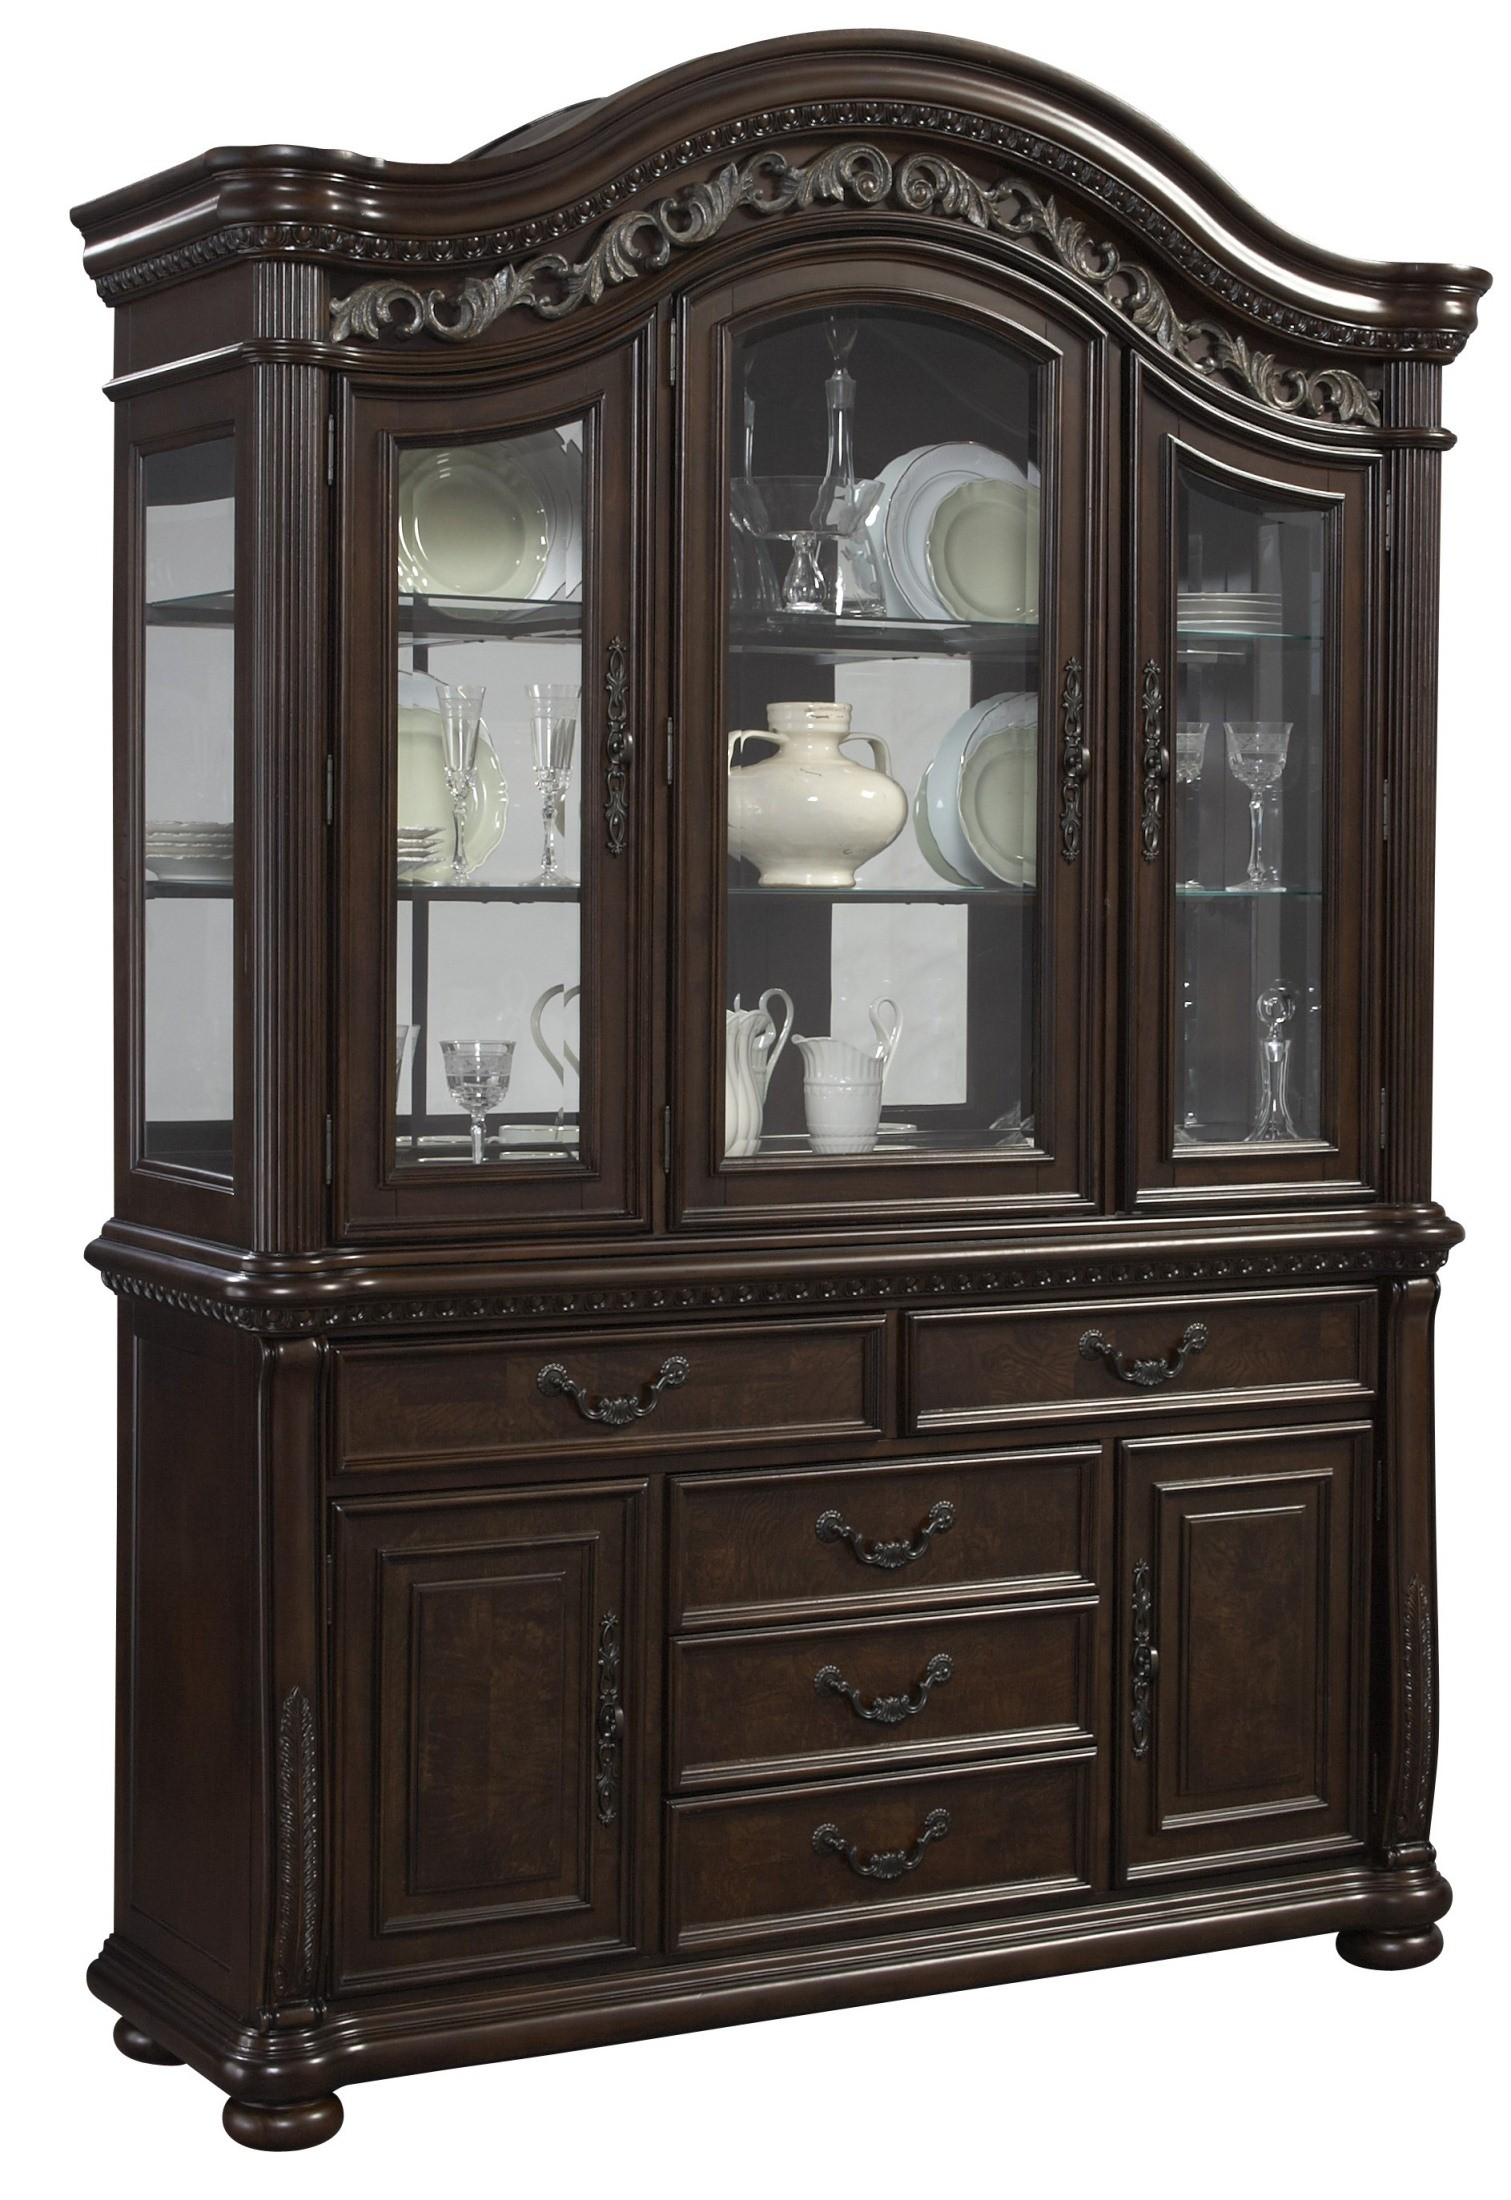 San Marino Dining Room Collection From Samuel Lawrence. 388139. 938599.  388140